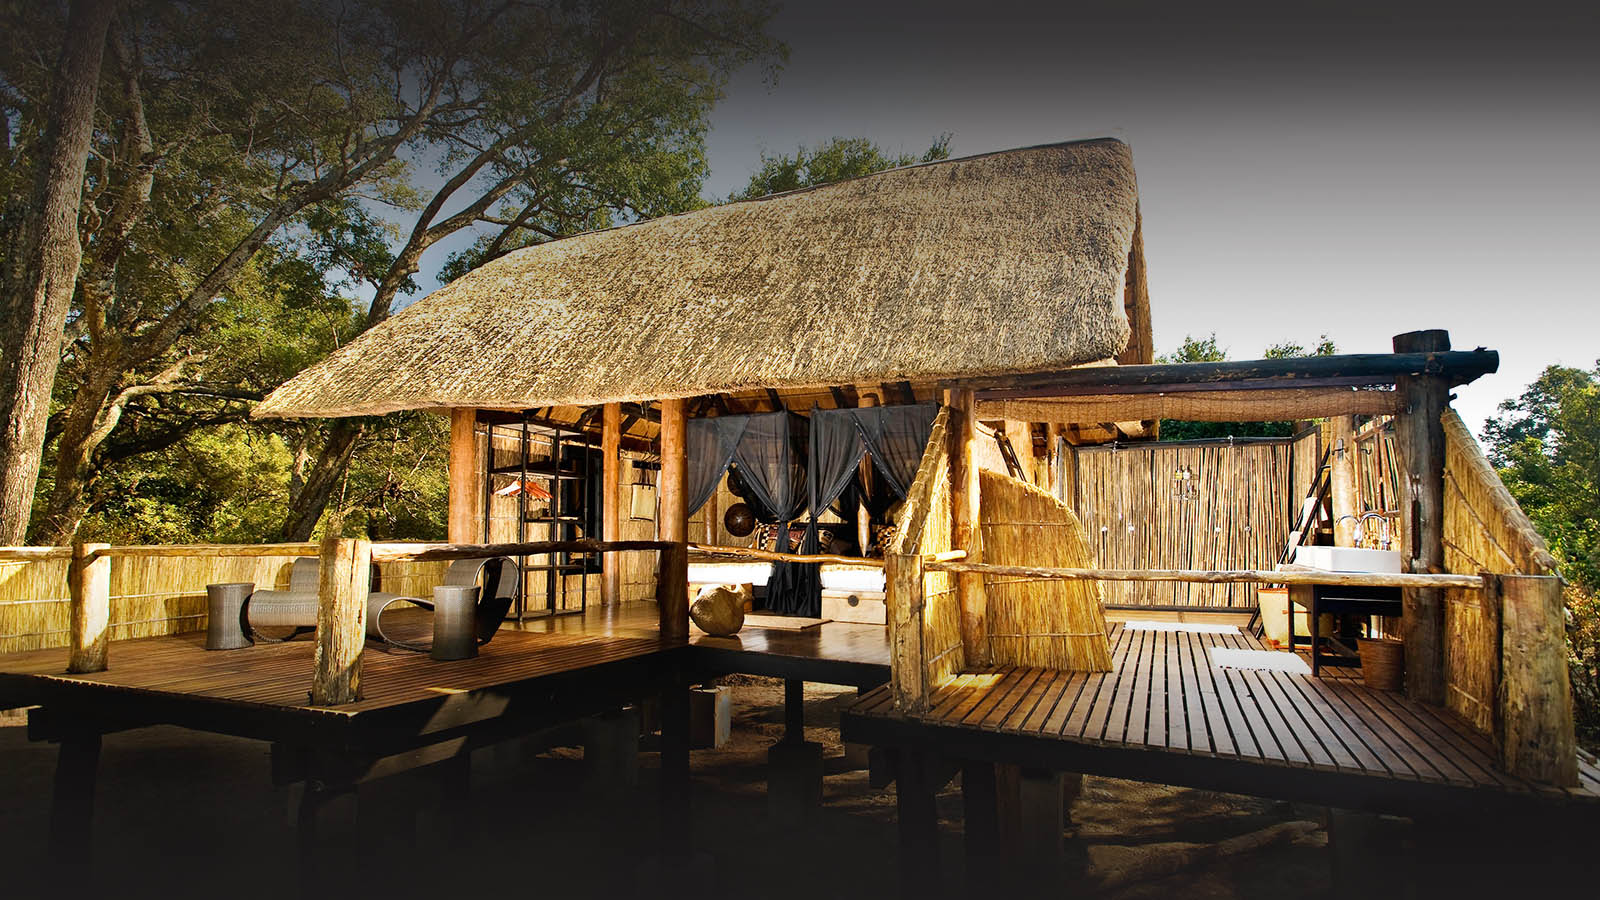 chamilandu bush camp zambia-in-style-tours-safari-packages-lodges-explore-south-luangwa-travel-zambia-lodges-lodge